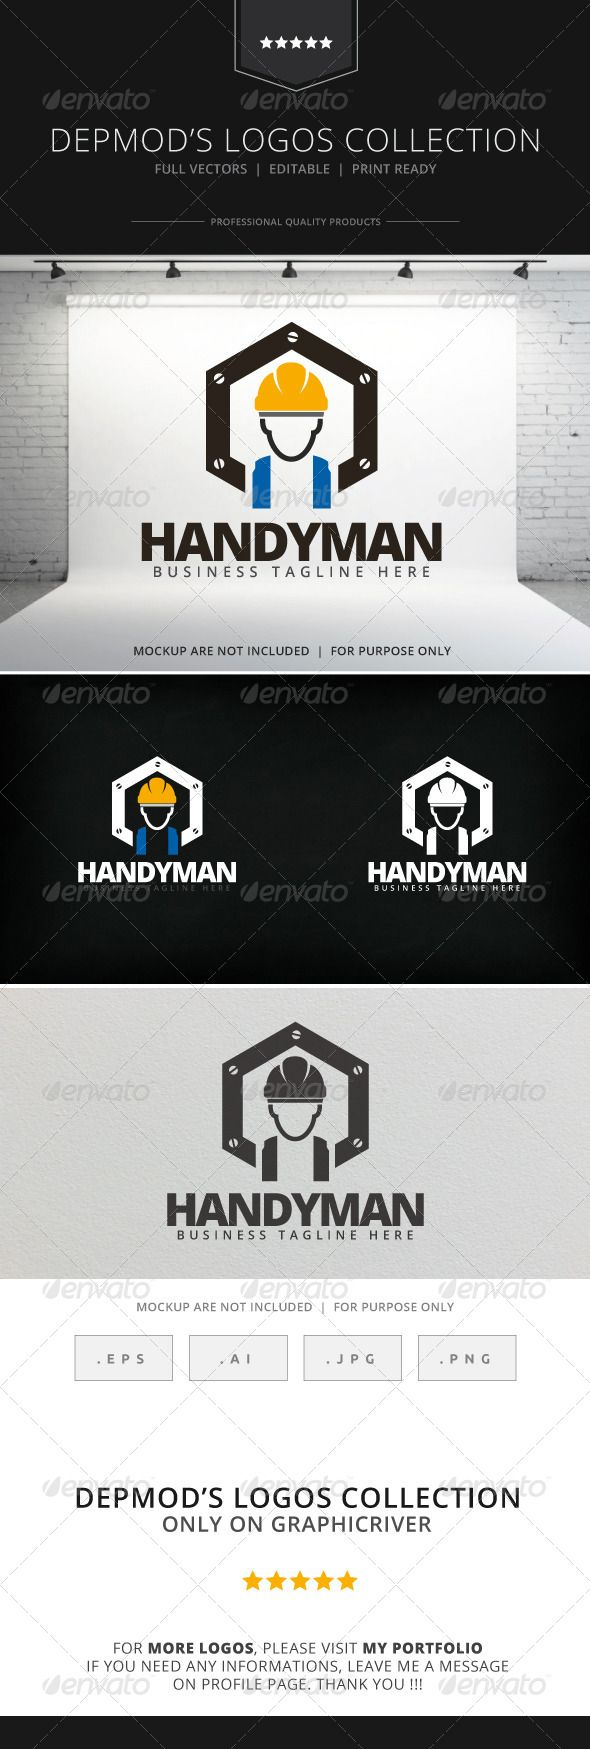 Handyman Logo — Vector EPS #identity #business • Available here → https://graphicriver.net/item/handyman-logo/8017021?ref=pxcr